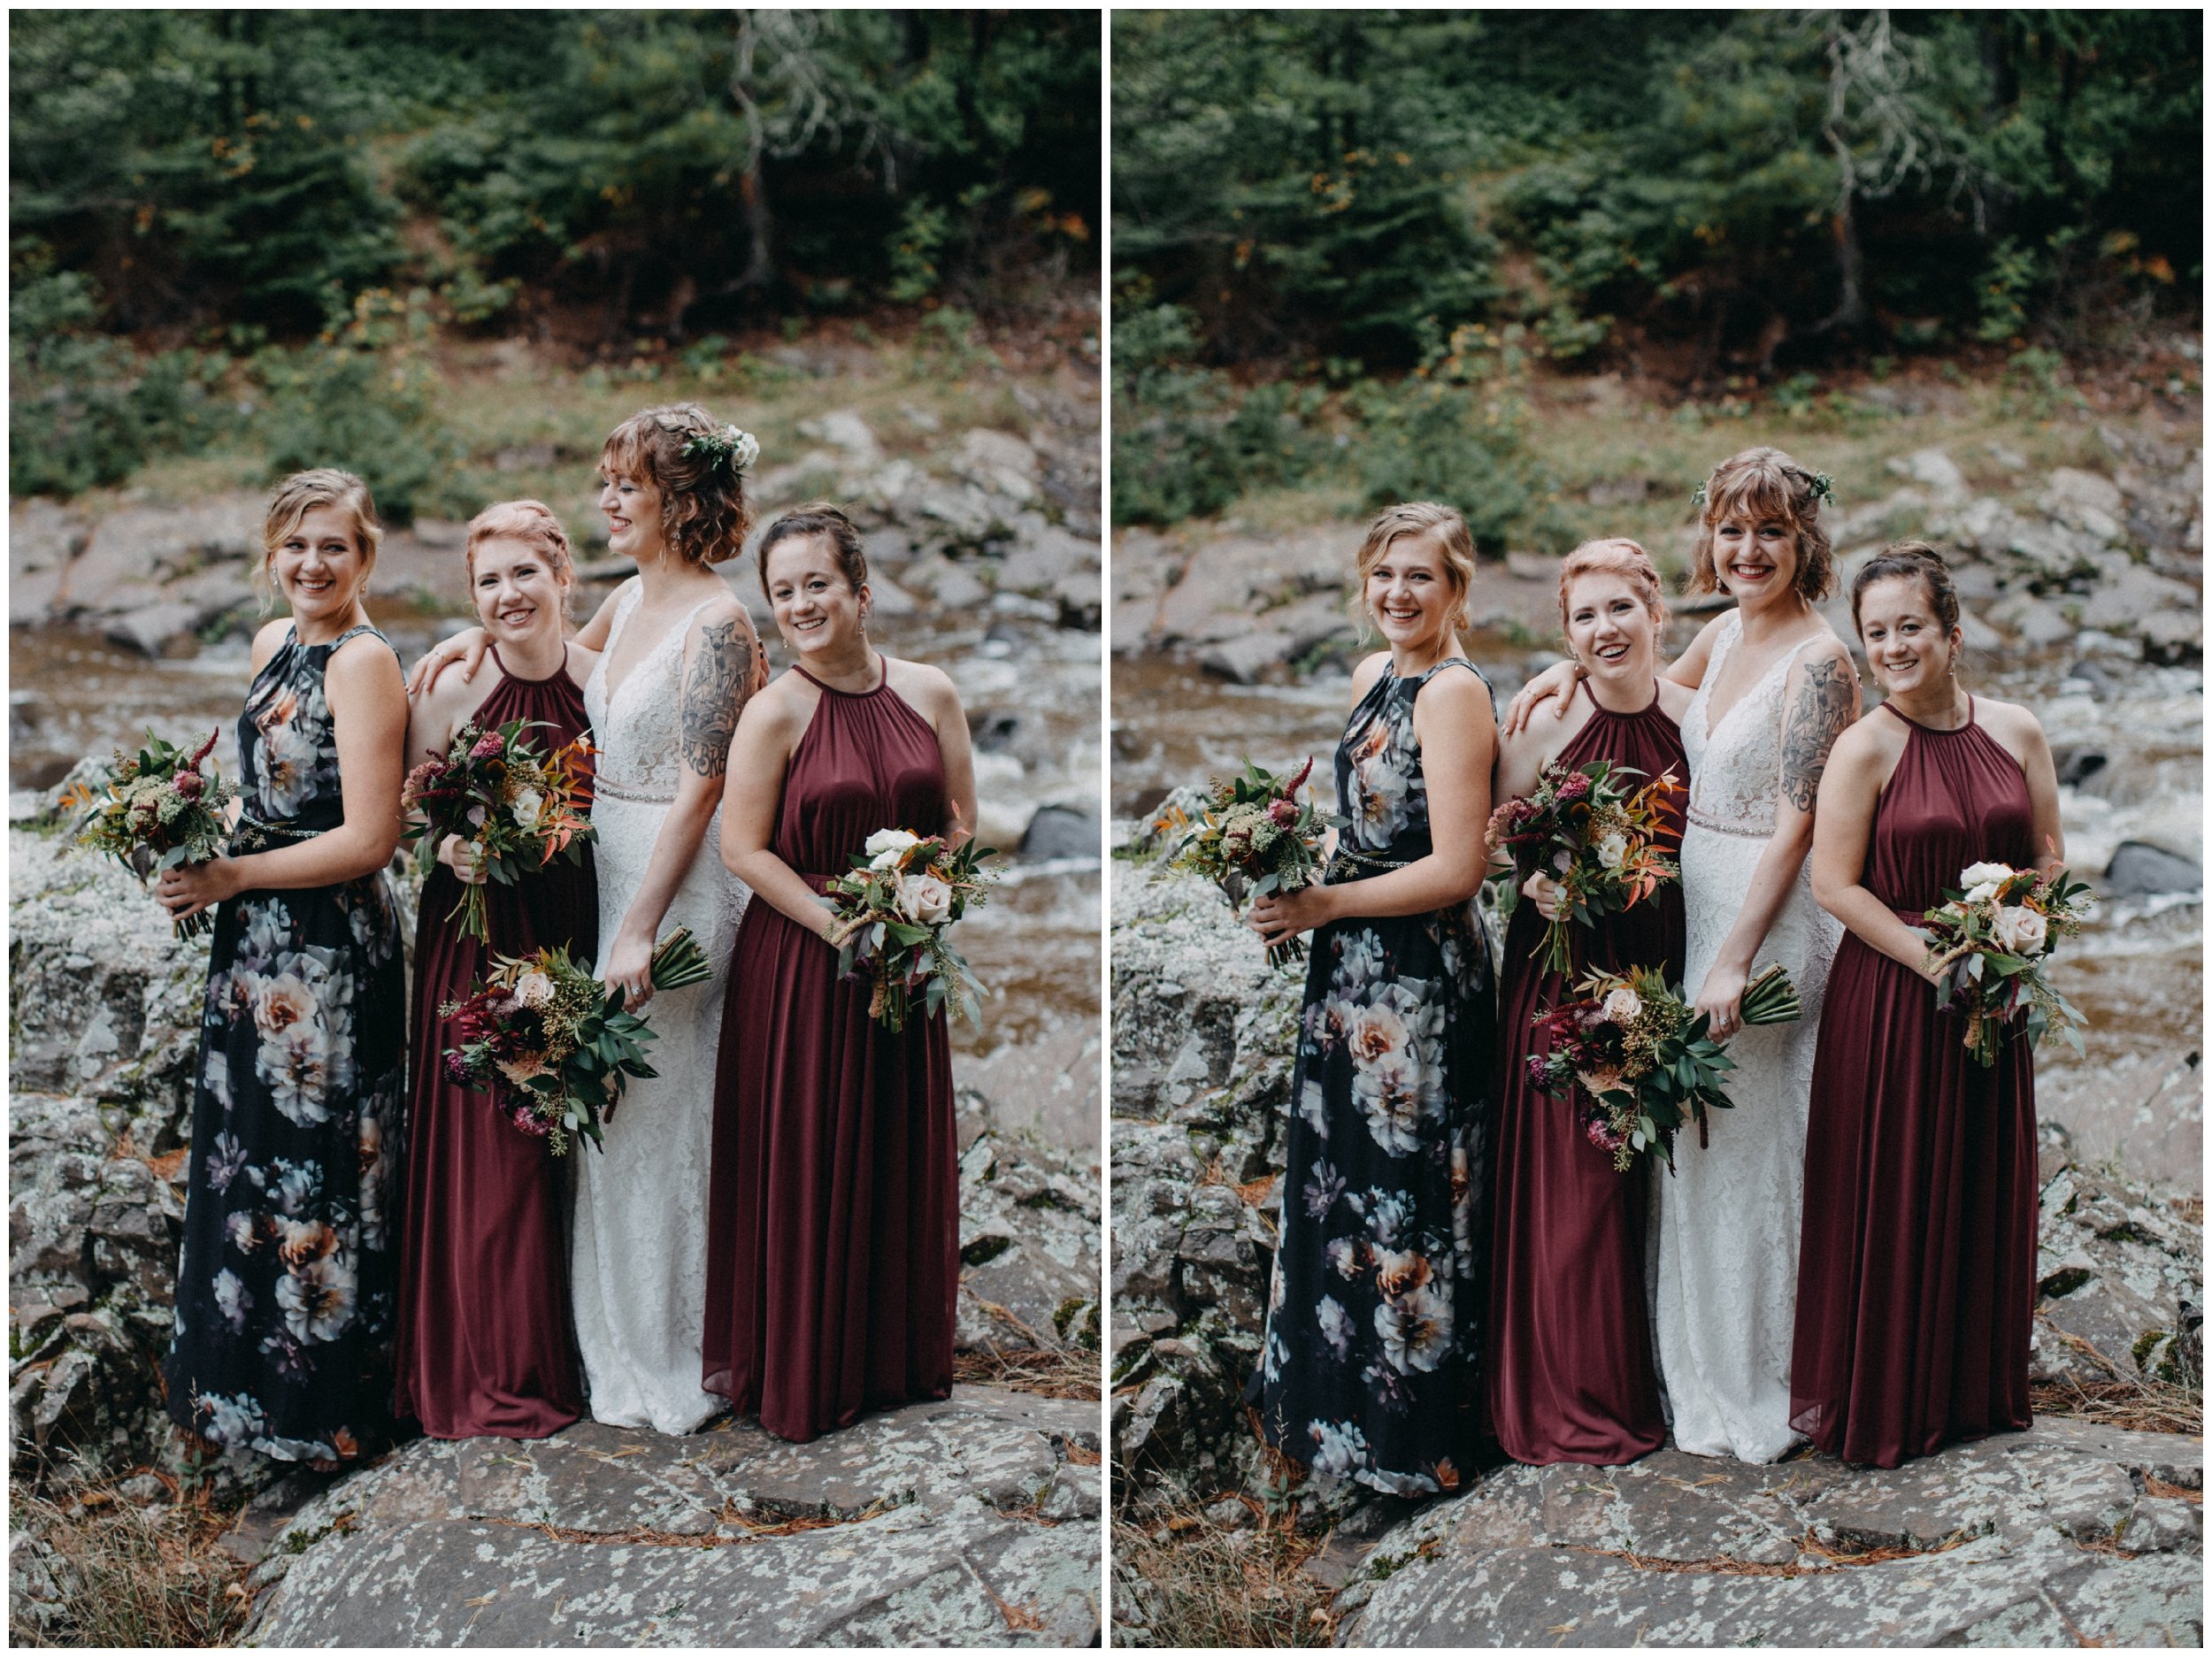 Bride and bridesmaids at intimate wedding in Duluth Minnesota